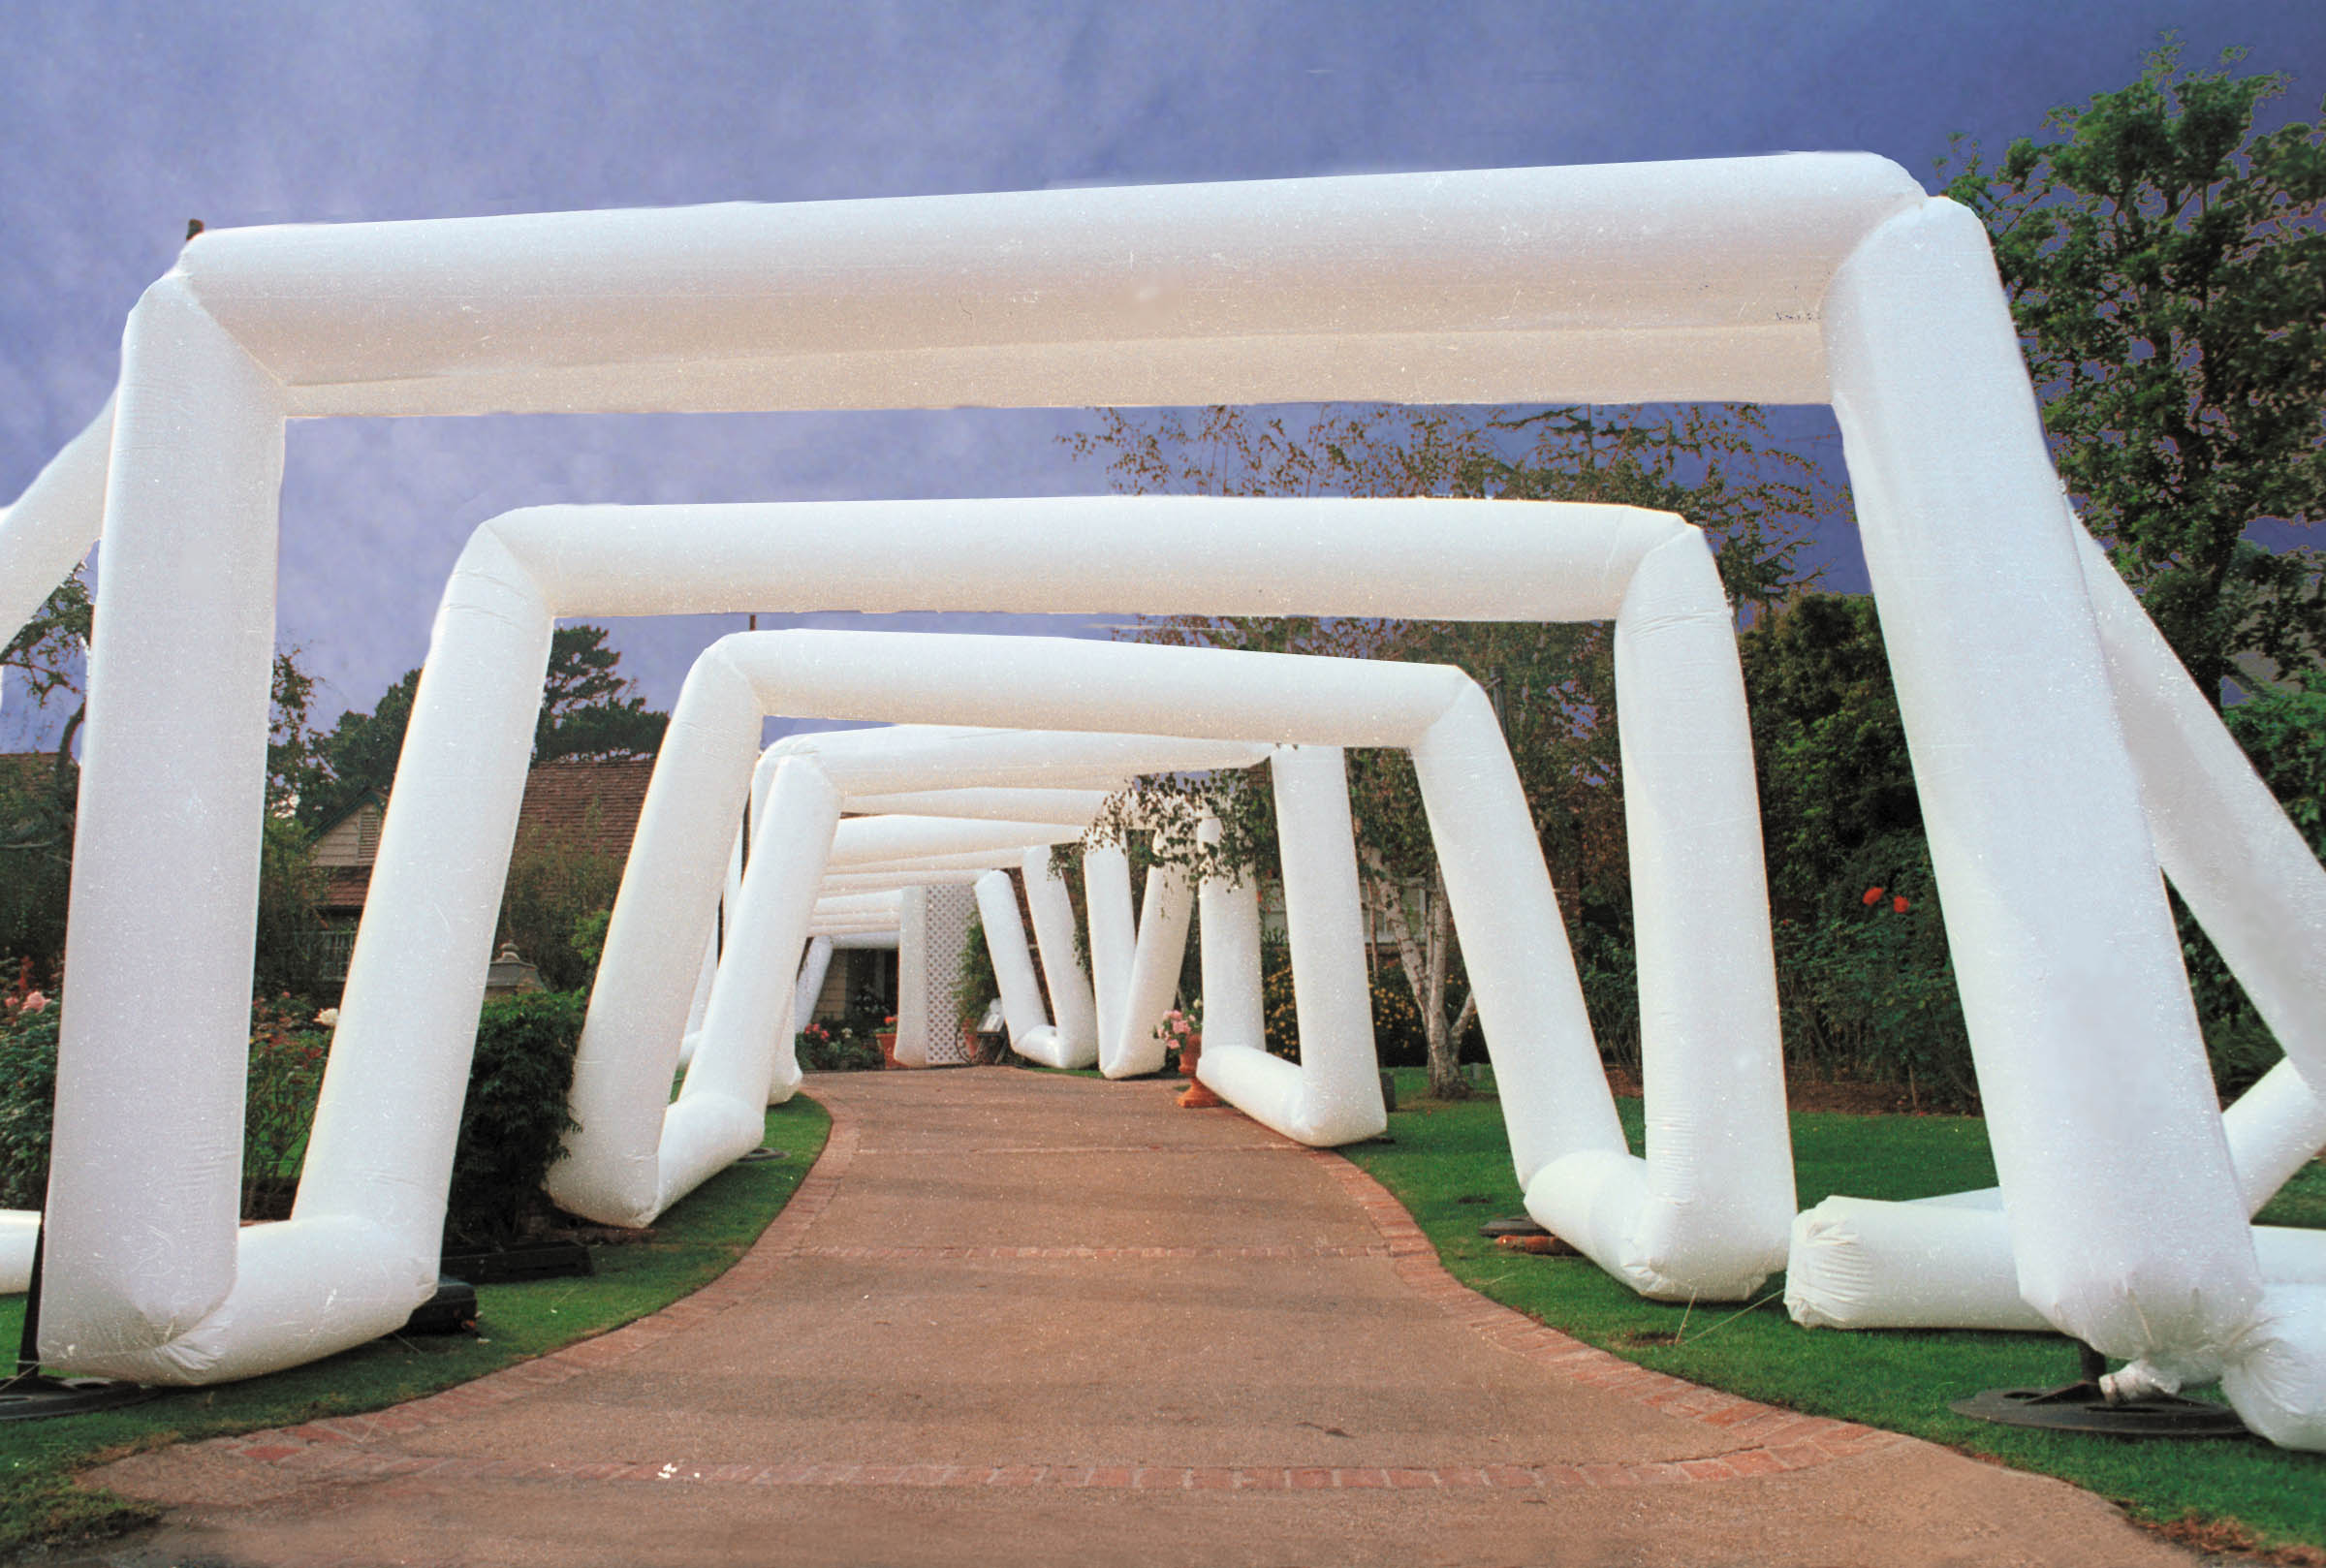 -  Tunnel of arched Airtubes